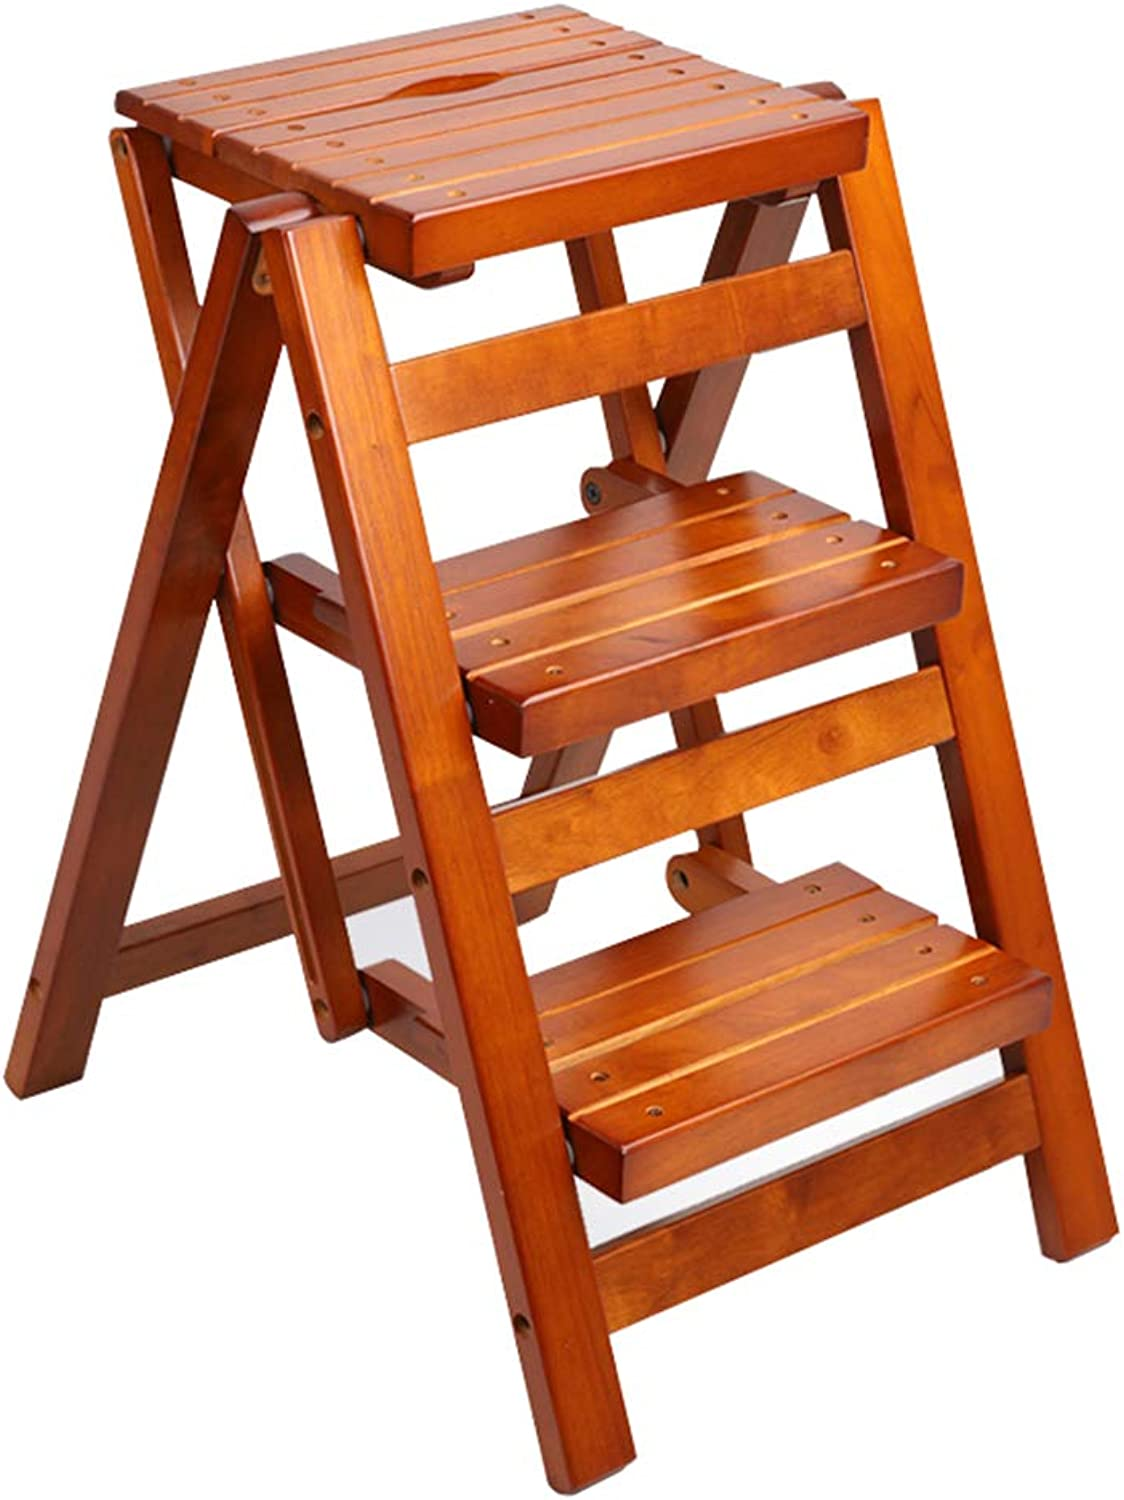 Folding Step Stool Wooden Multi-functional Household 3 Step Ladder Stool Indoor Non-Slip Easy Storage Safety Stepladder Stool,Brown